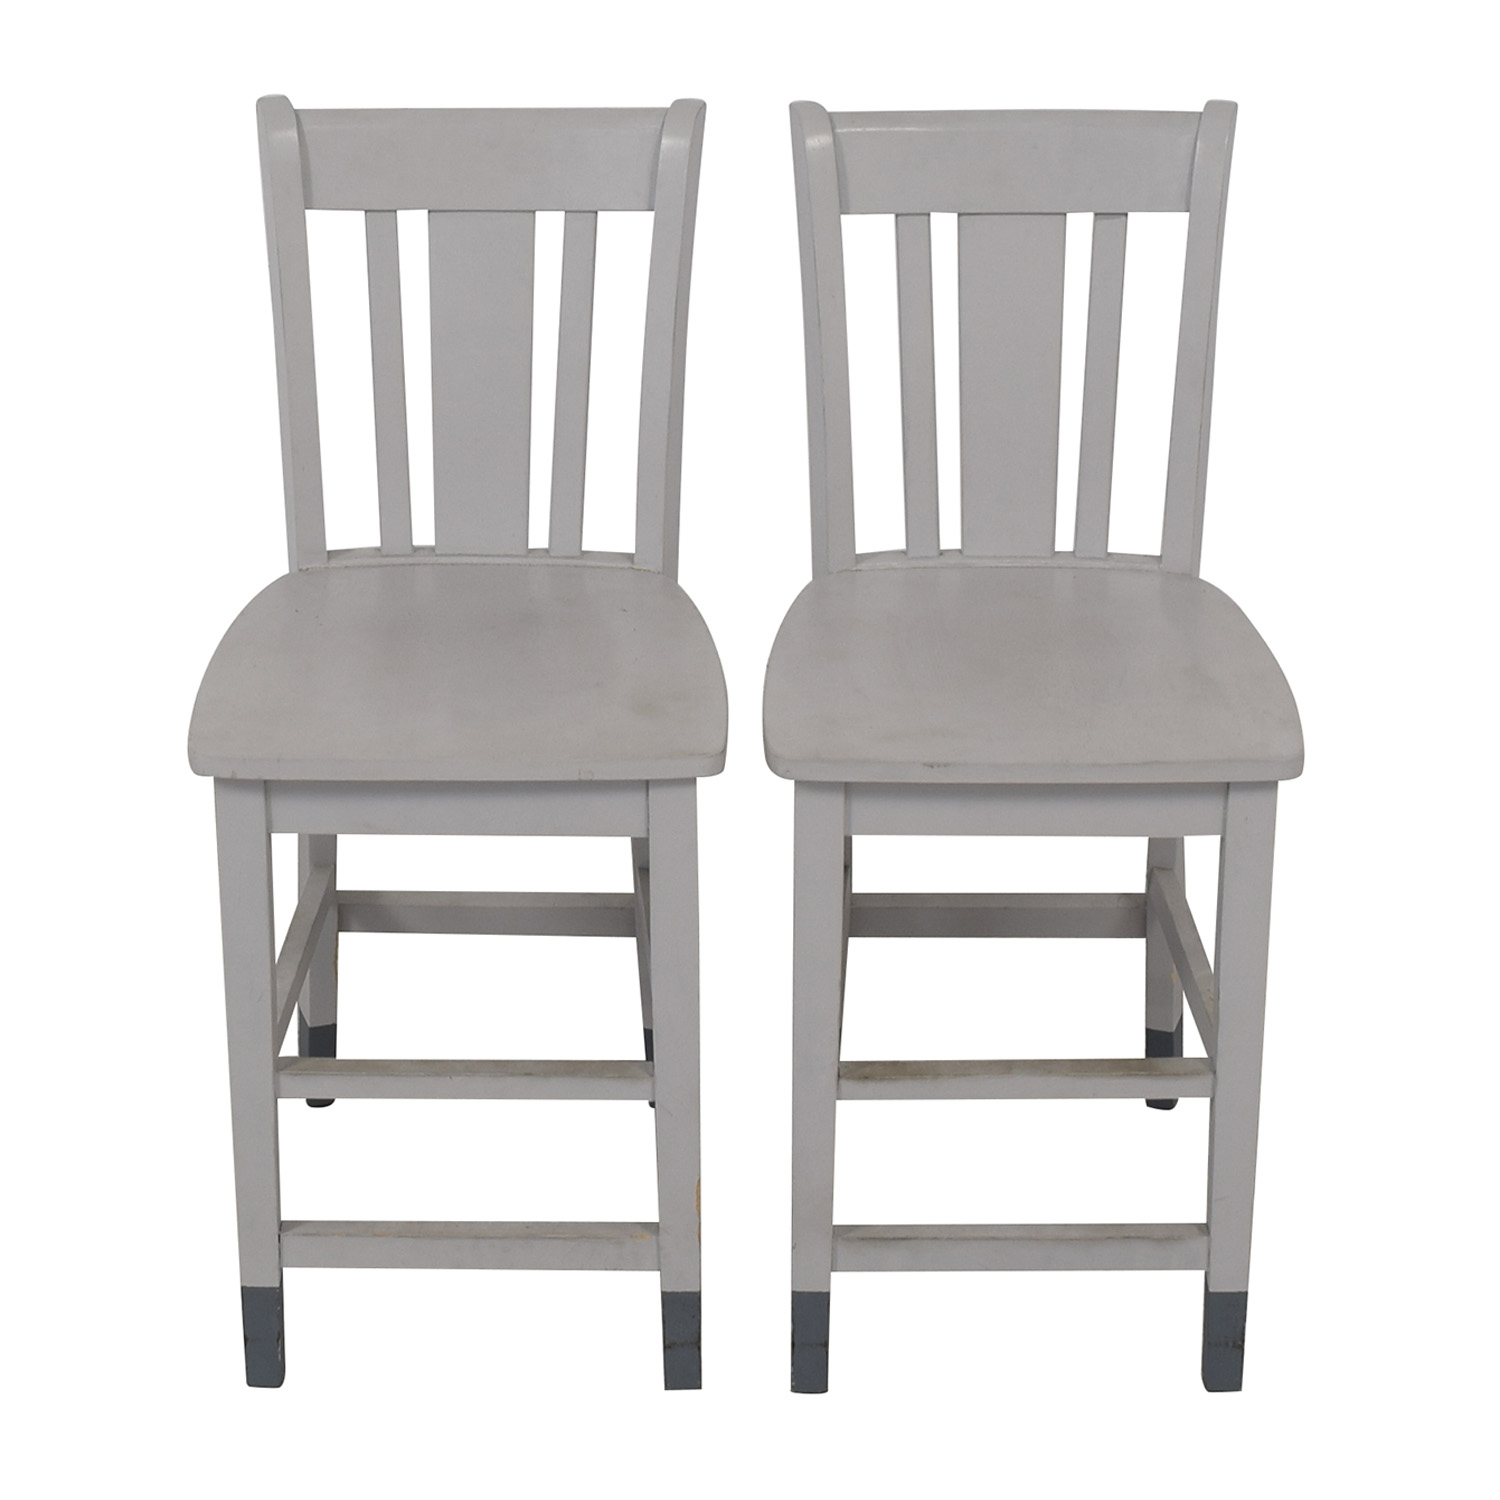 Awe Inspiring 75 Off Grey Wood Counter Height Chairs Chairs Andrewgaddart Wooden Chair Designs For Living Room Andrewgaddartcom